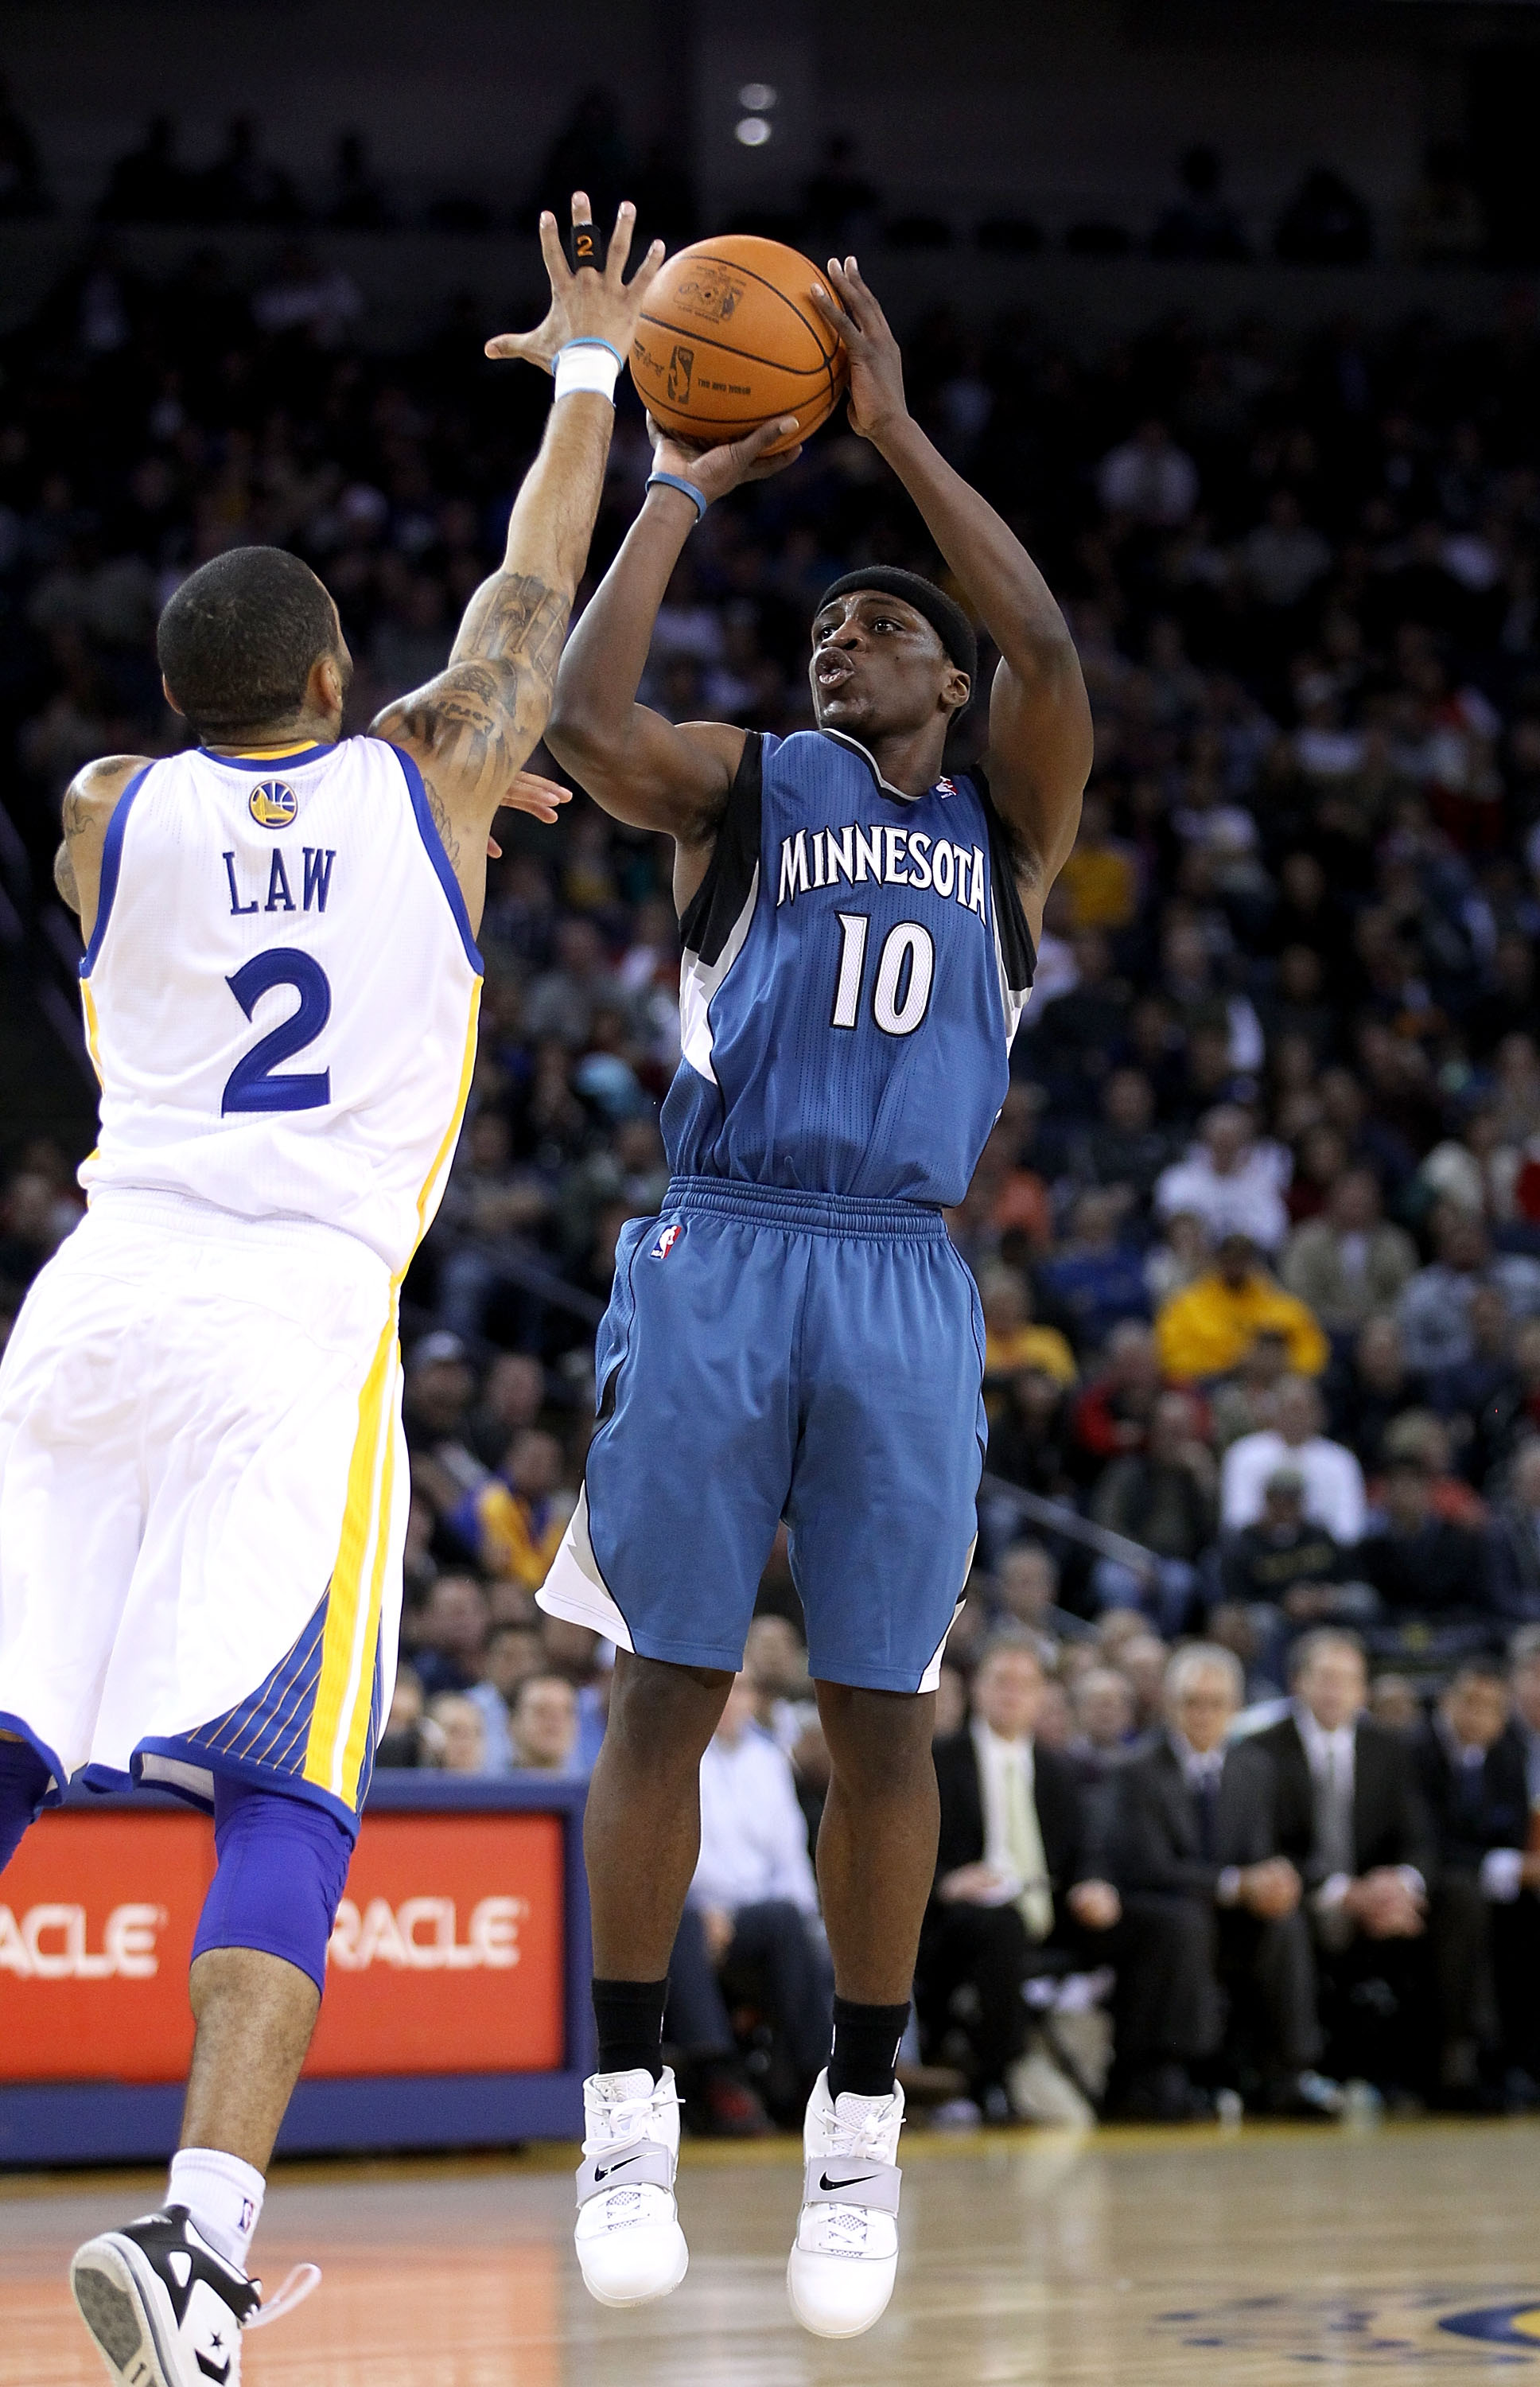 OAKLAND, CA - DECEMBER 14:  Jonny Flynn #10 of the Minnesota Timberwolves shoots over Acie Law #2 of the Golden State Warriors at Oracle Arena on December 14, 2010 in Oakland, California.  NOTE TO USER: User expressly acknowledges and agrees that, by down